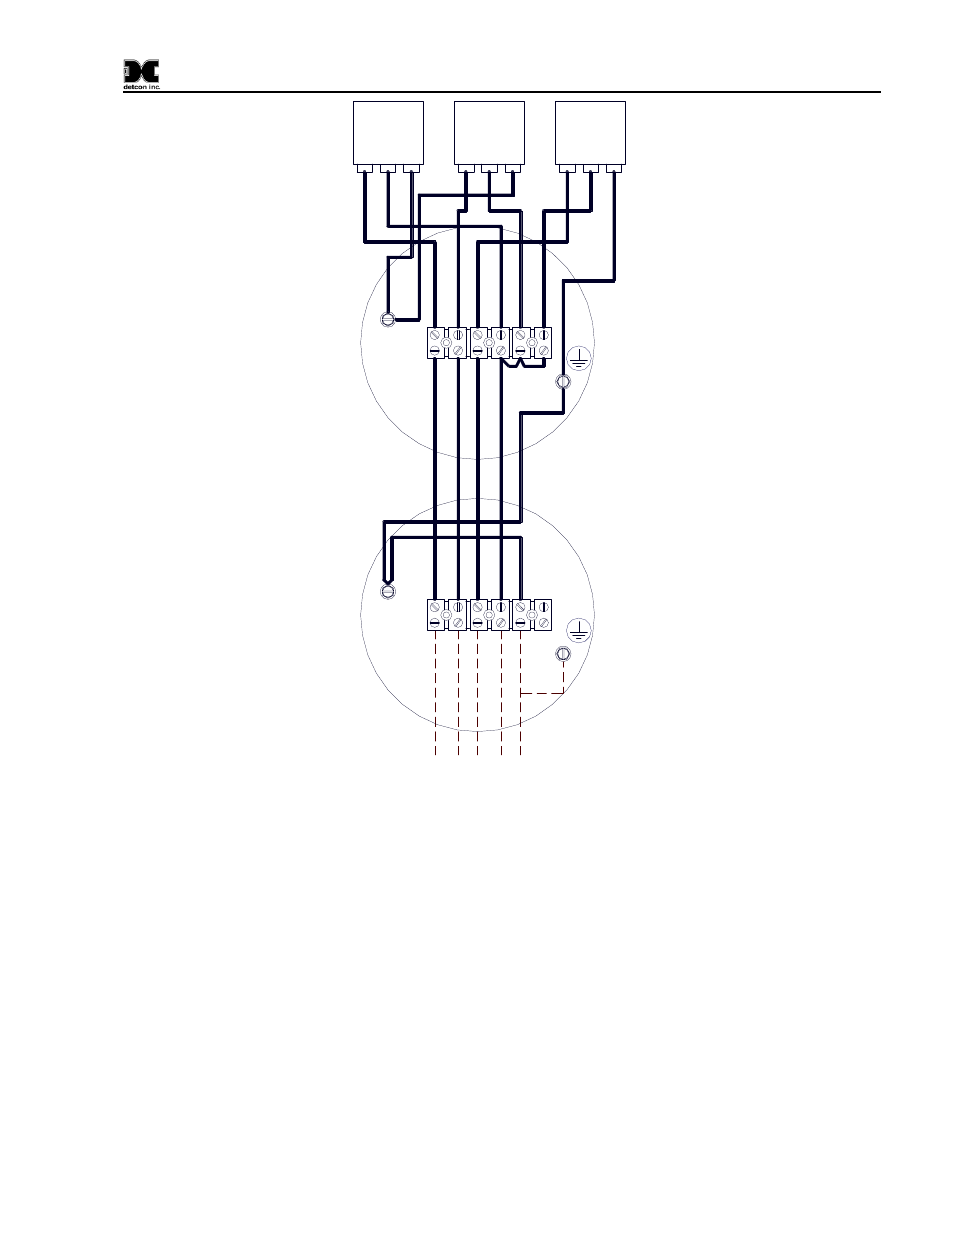 Figure 5 120 240vac Wiring Diagram Customer Input Way 240 Vac Plug Outlet Box 4